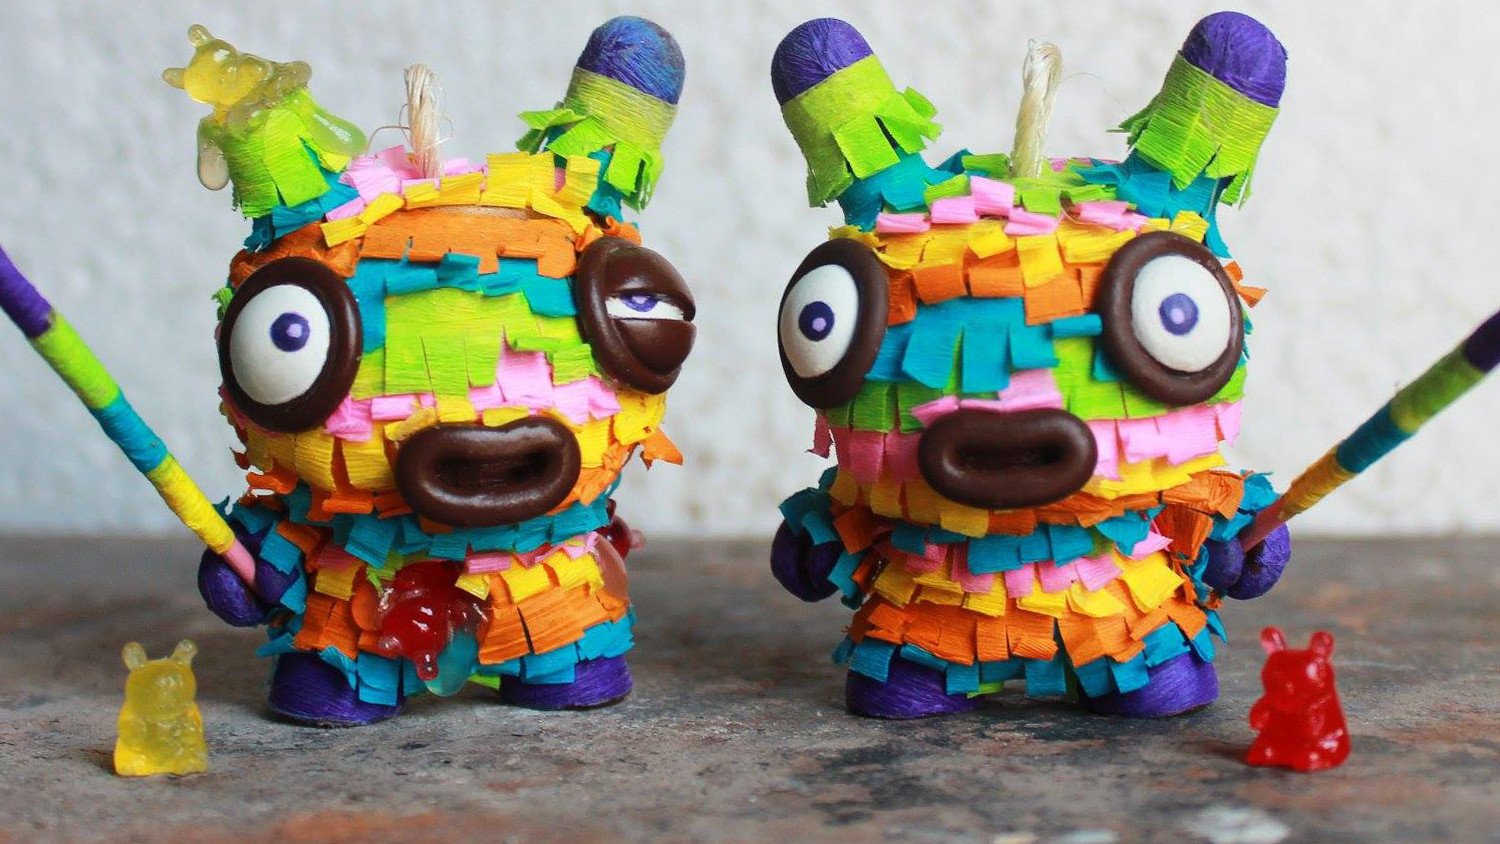 Shiffa's Normal & Broken Pinata Dunnys » CoART Magazine